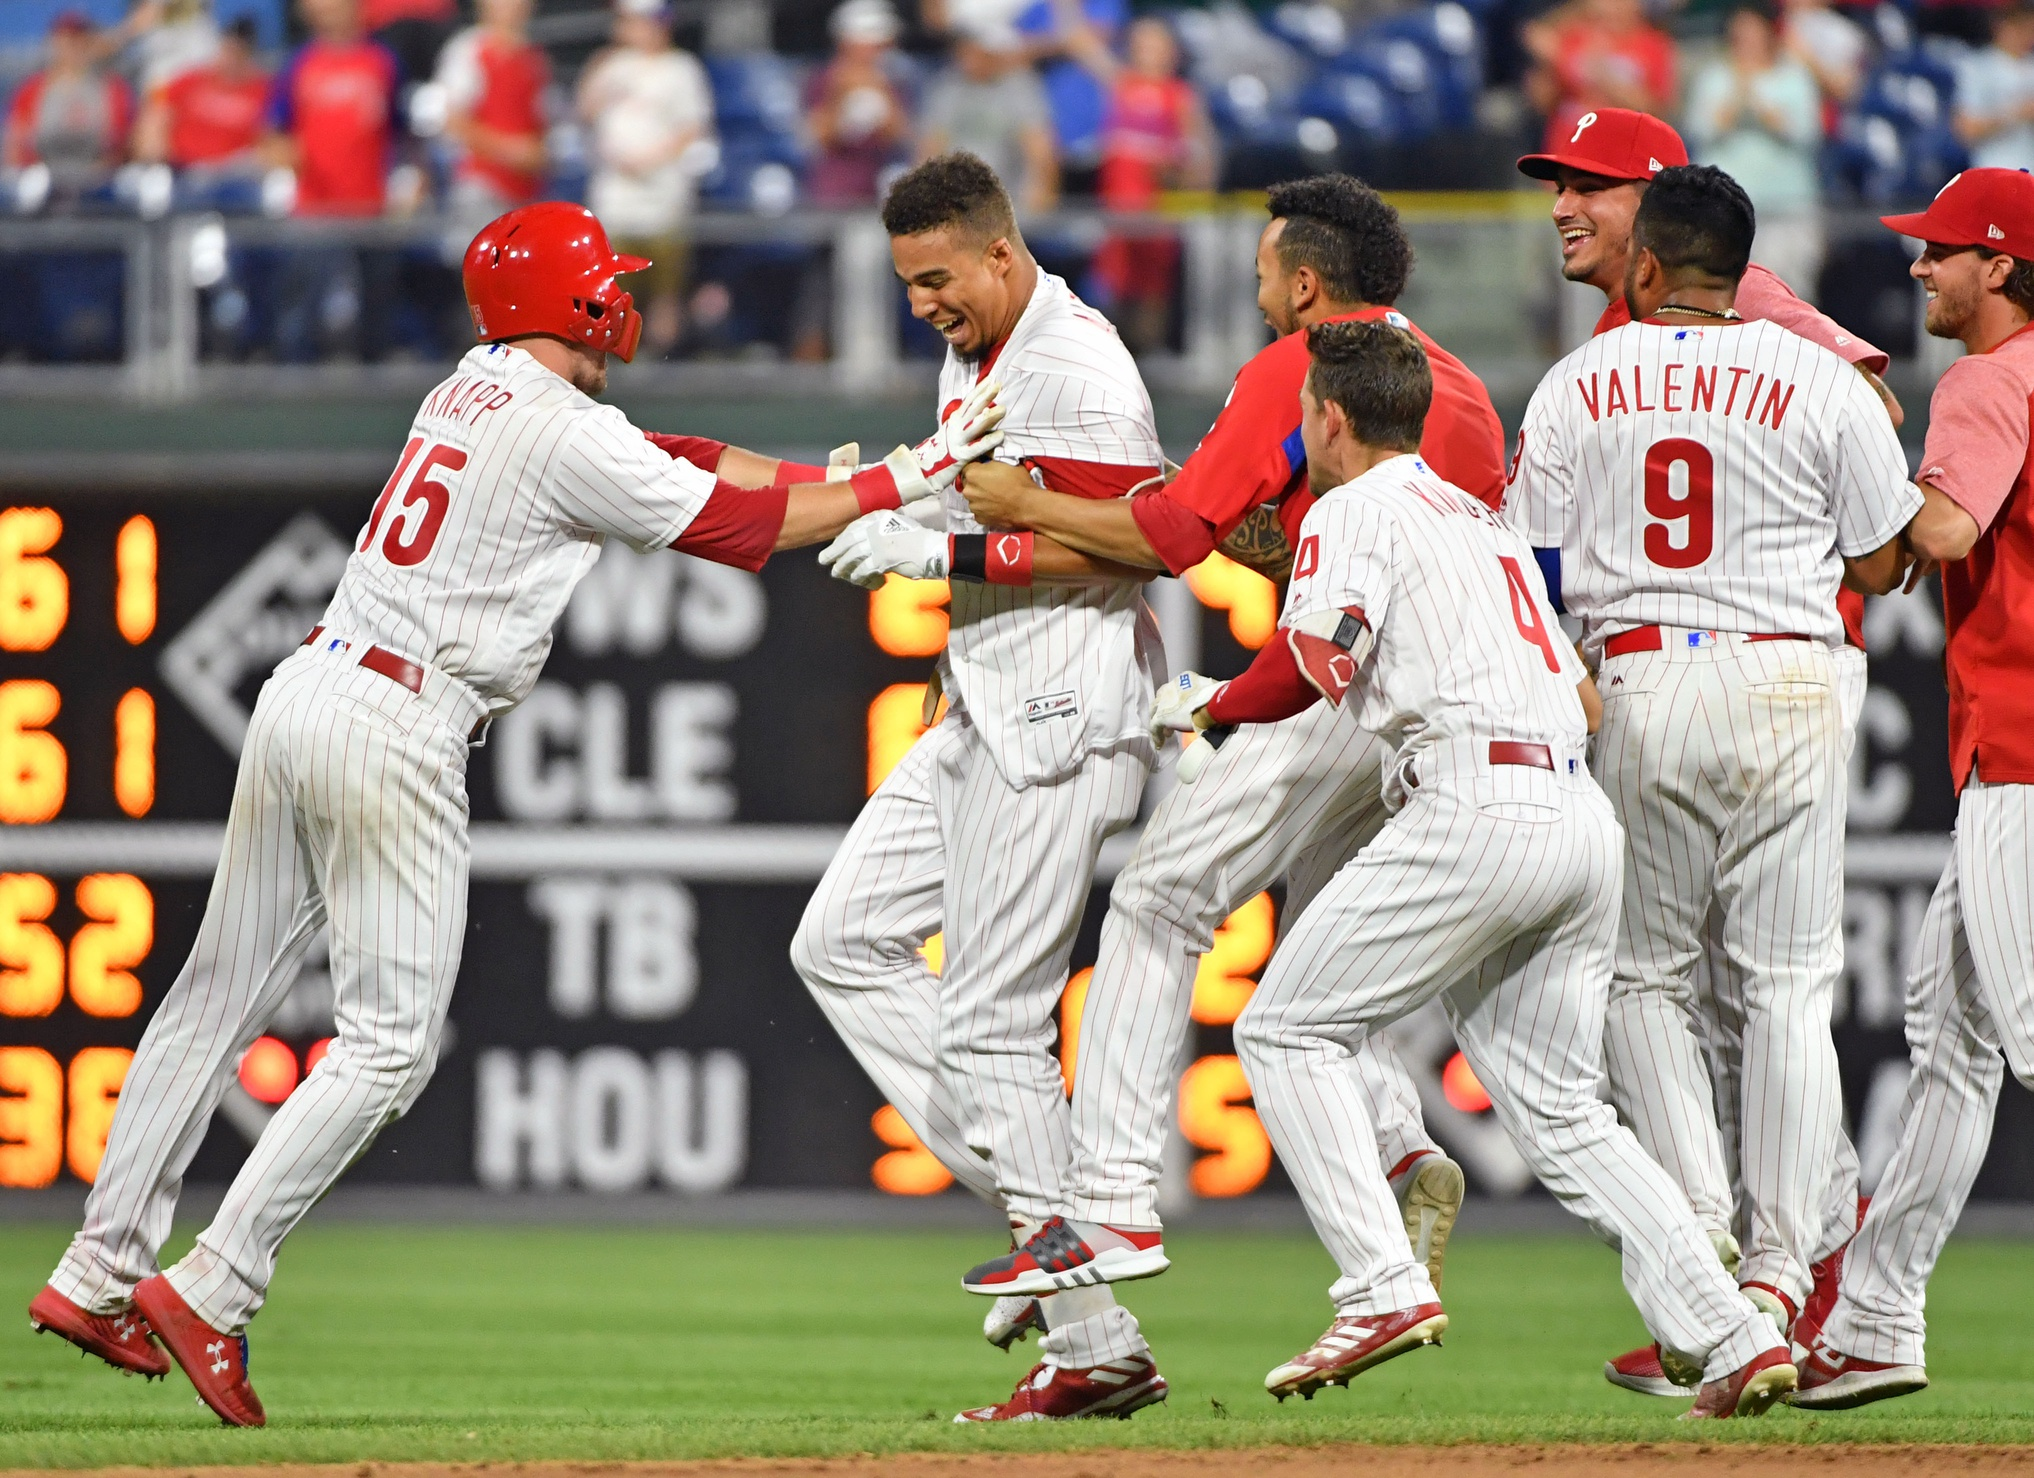 Phillies win wild extra inning game despite nearly giving game away